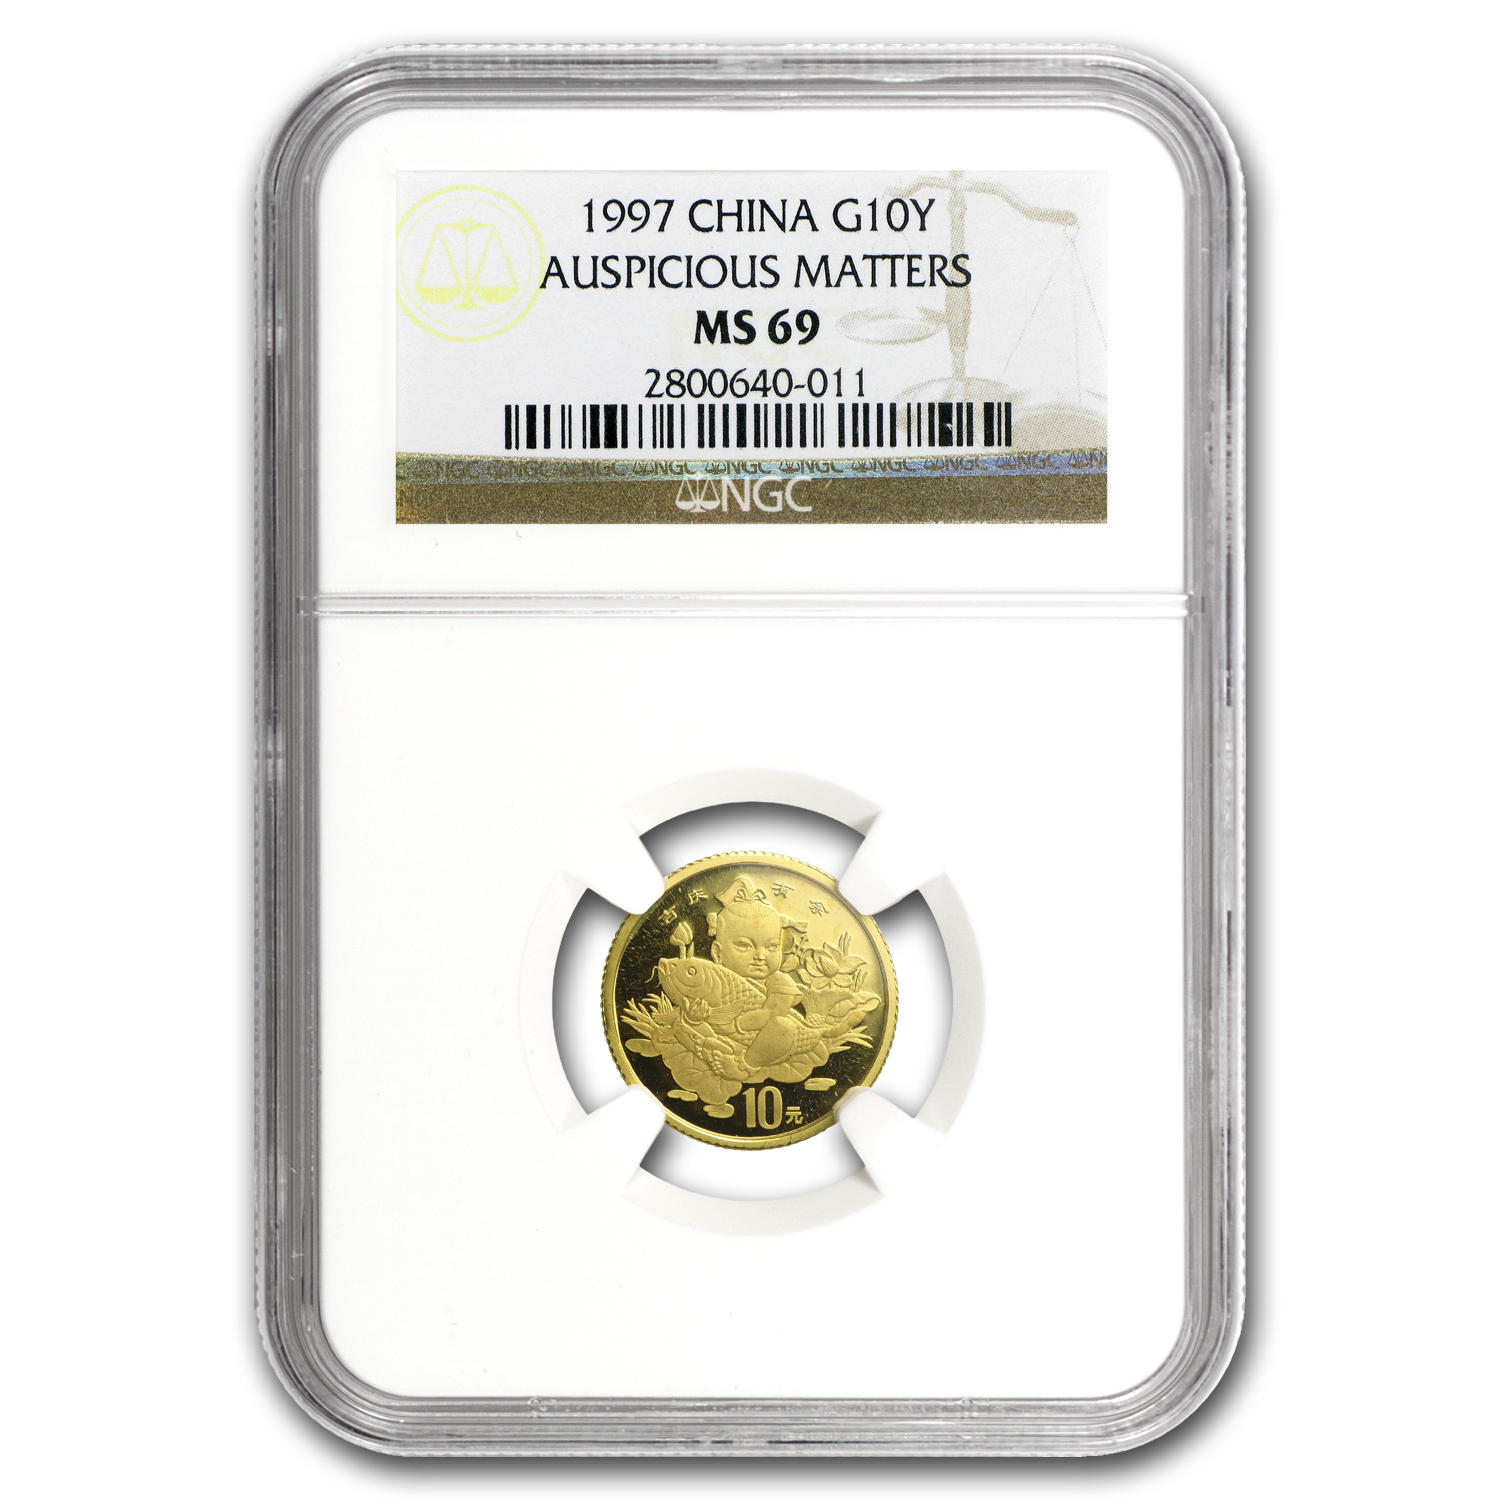 1997 China 1/10 oz Gold Coin of Auspicious Matters MS-69 NGC